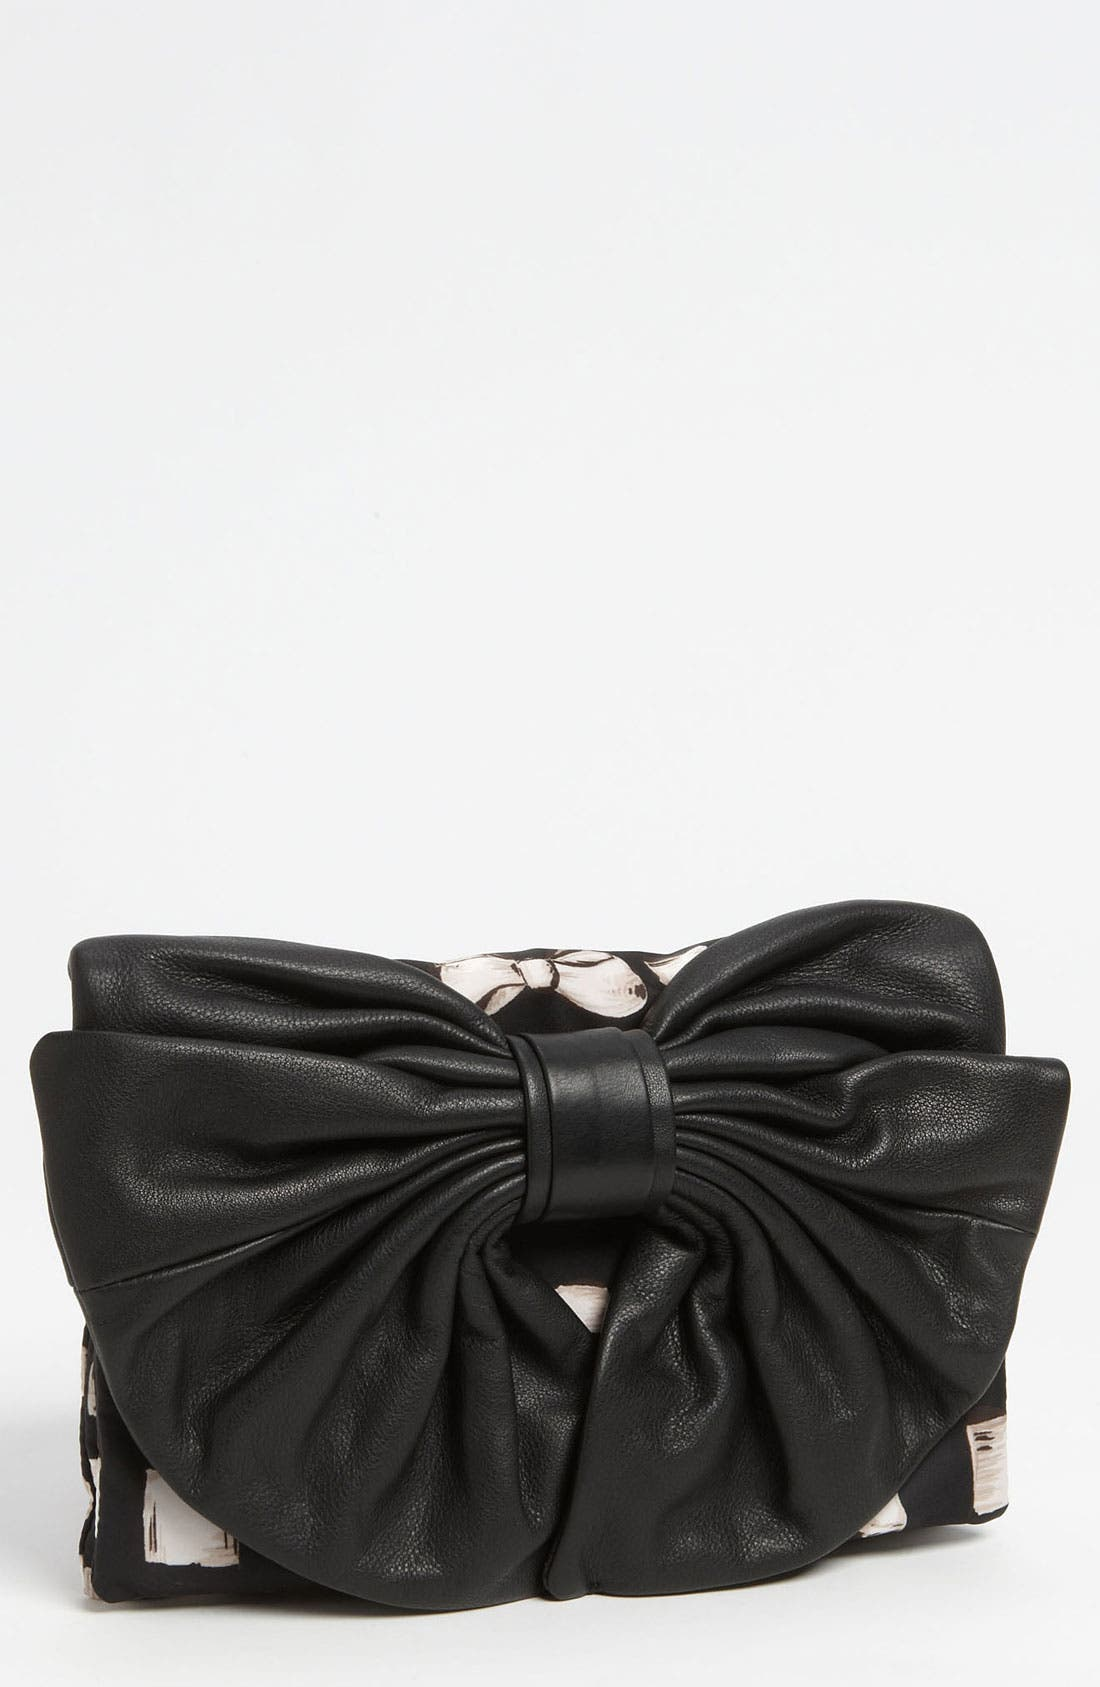 Alternate Image 1 Selected - RED Valentino 'Bow' Print Clutch